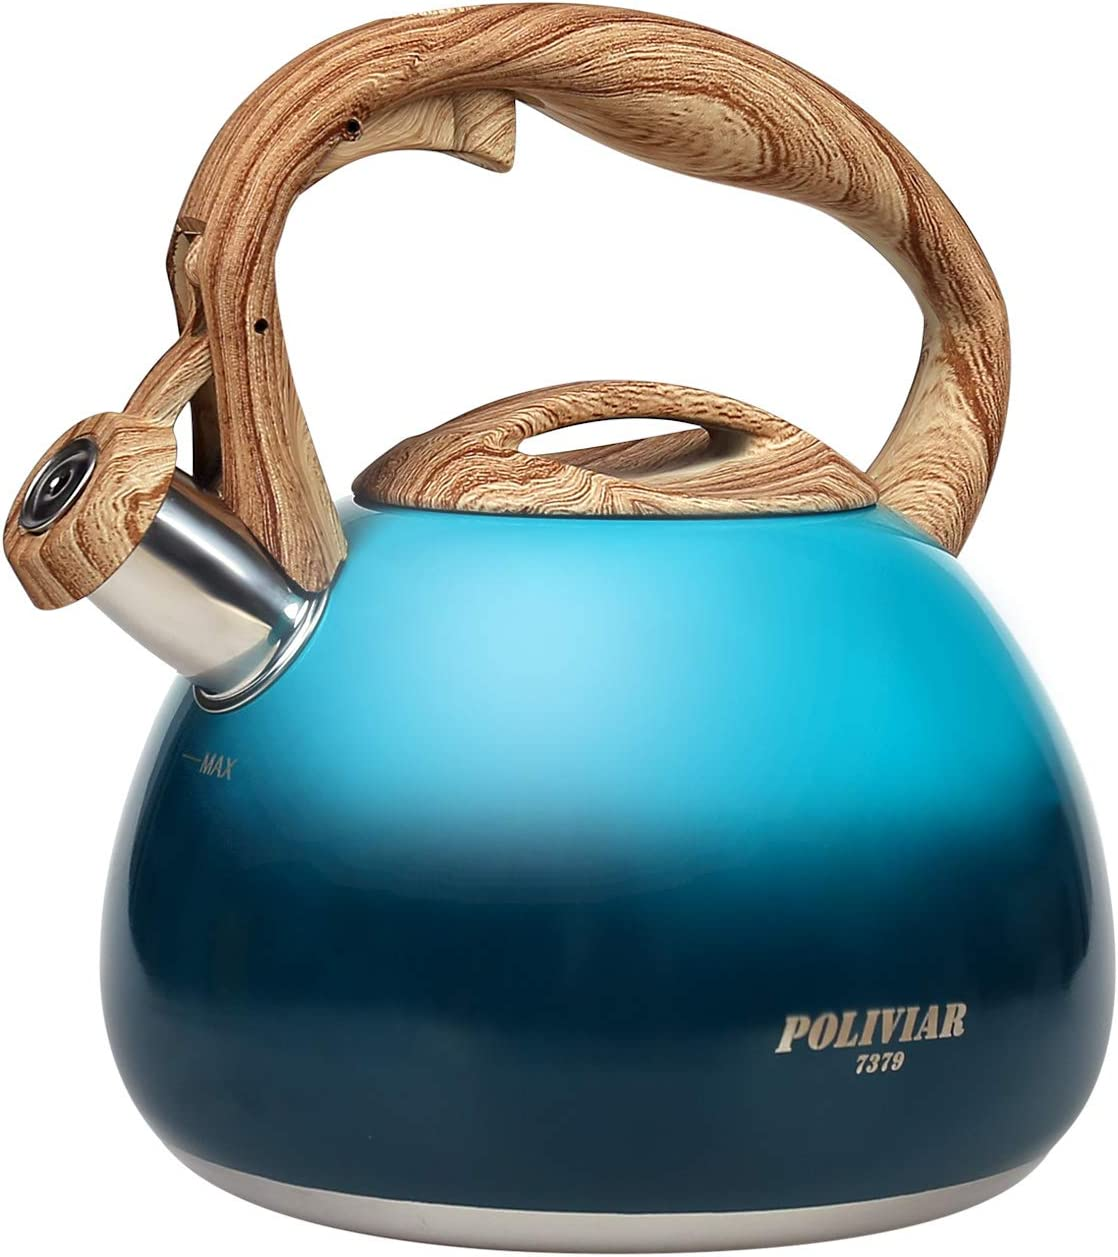 POLIVIAR Tea Kettle, Aqua Blue Tea Pot Stovetop, 2.7 Quart Loud Whistling Coffee and Teapot, Food Grade Stainless Steel for Anti-Hot Handle and No-Rust, Suitable for All Heat Sources (JX2018-DB20)